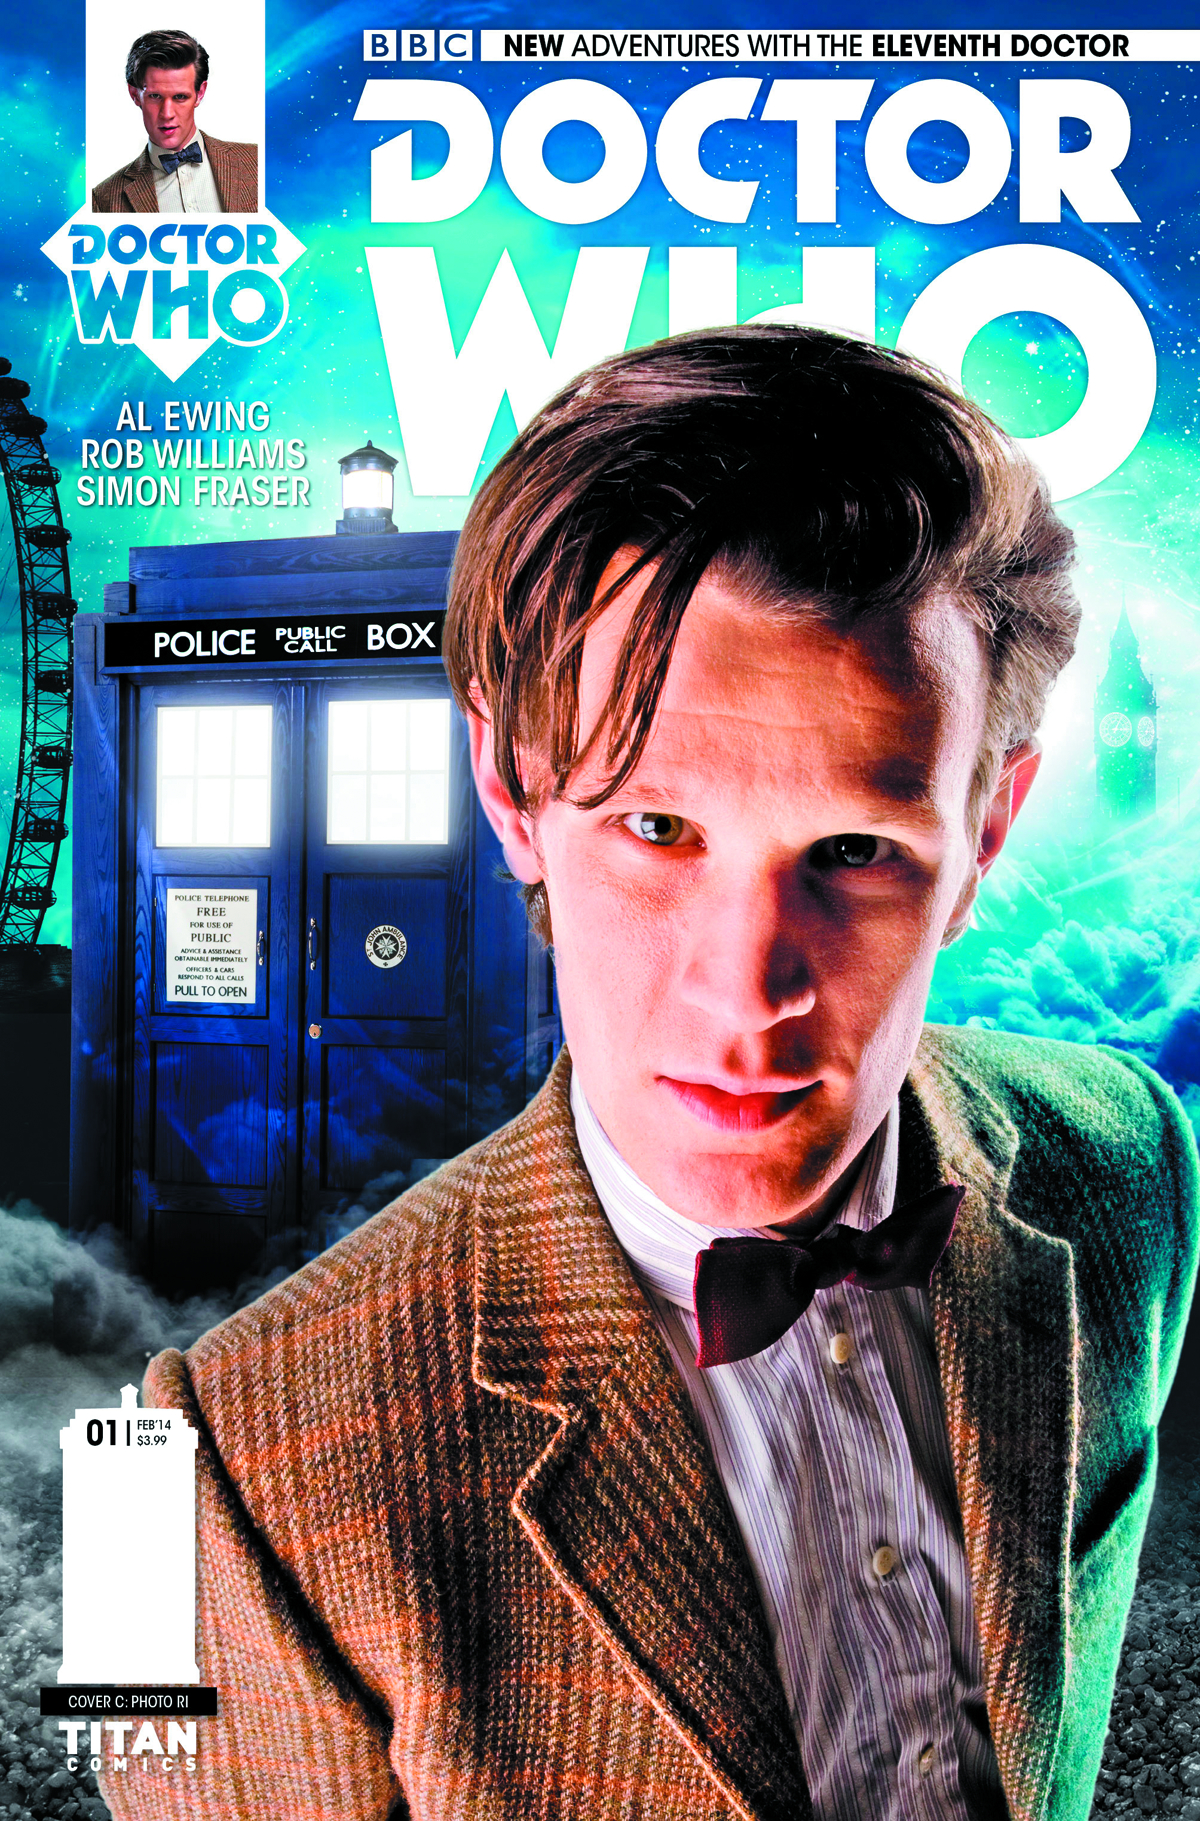 DOCTOR WHO 11TH #1 10 COPY INCV PHOTO